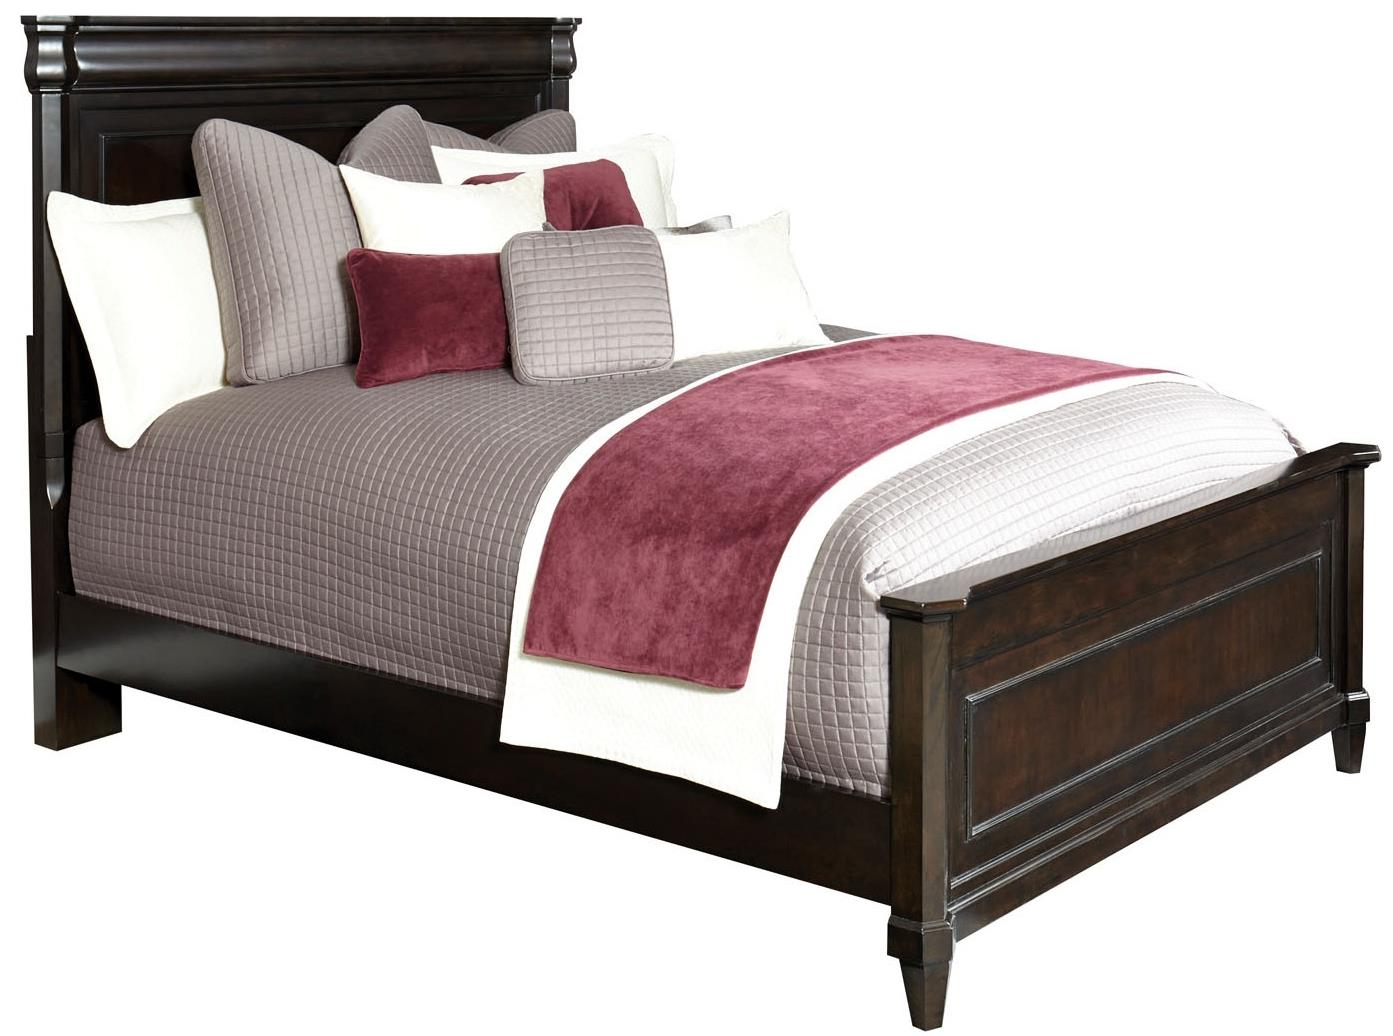 Broyhill Furniture Aryell California King Panel Bed - Item Number: 4907-254+255+455